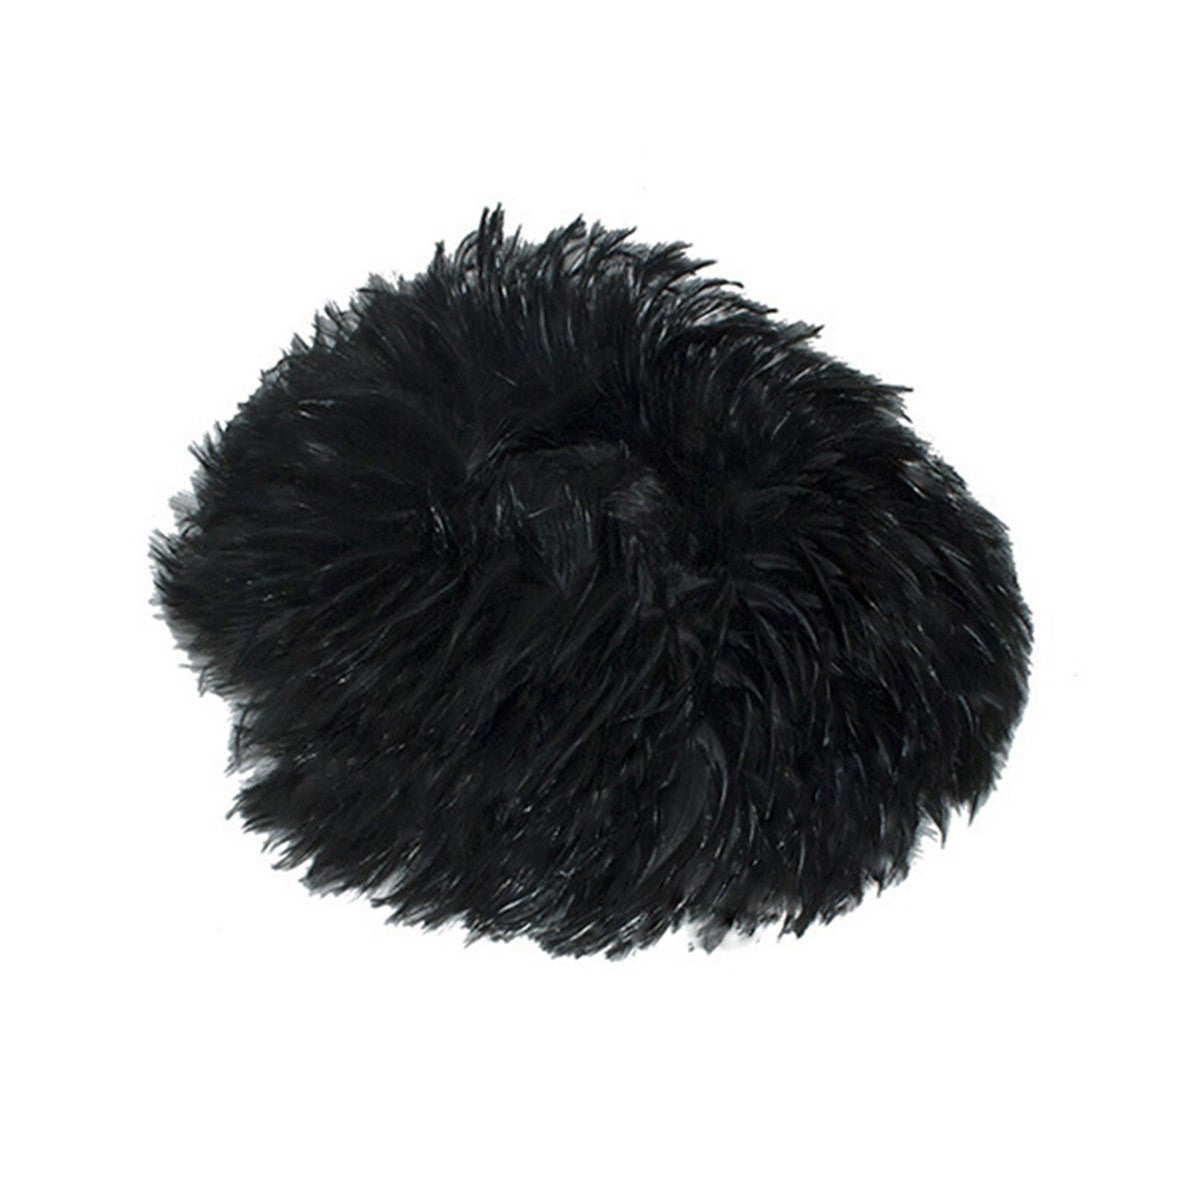 1950s All-Over-Feather Black Cocktail Hat